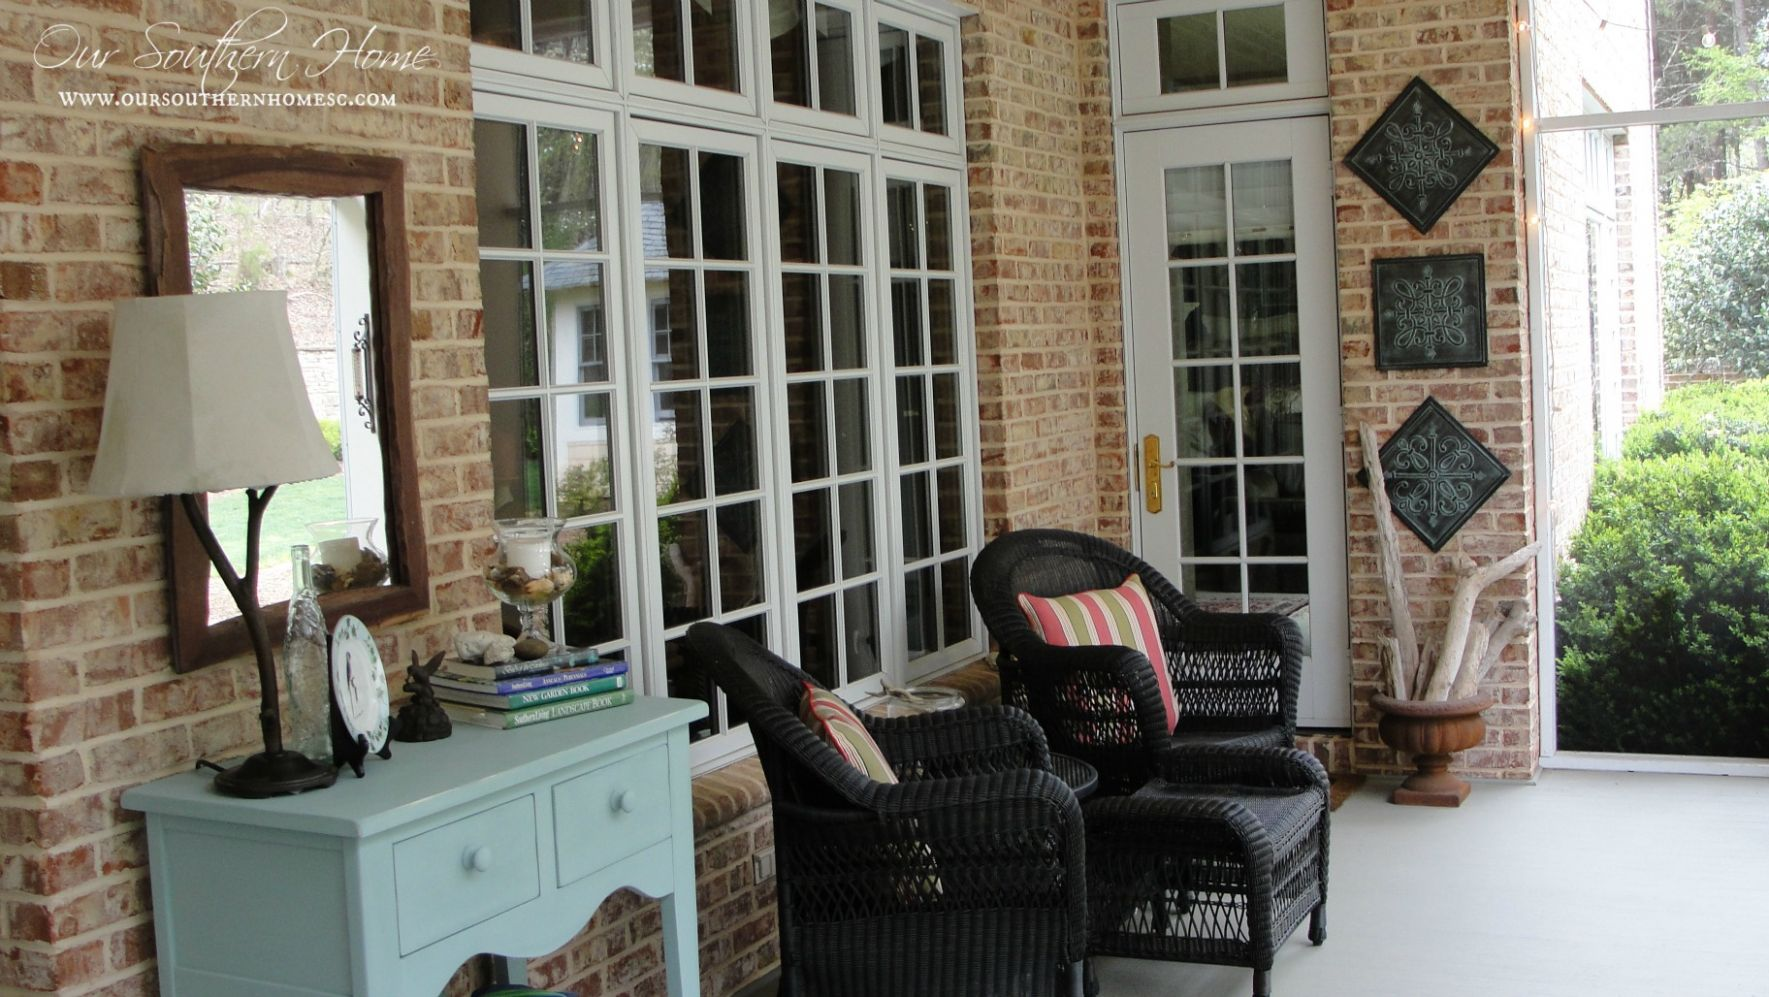 Decoration Ideas Exterior Front Porch Cheerful Tabletop Nautical ..